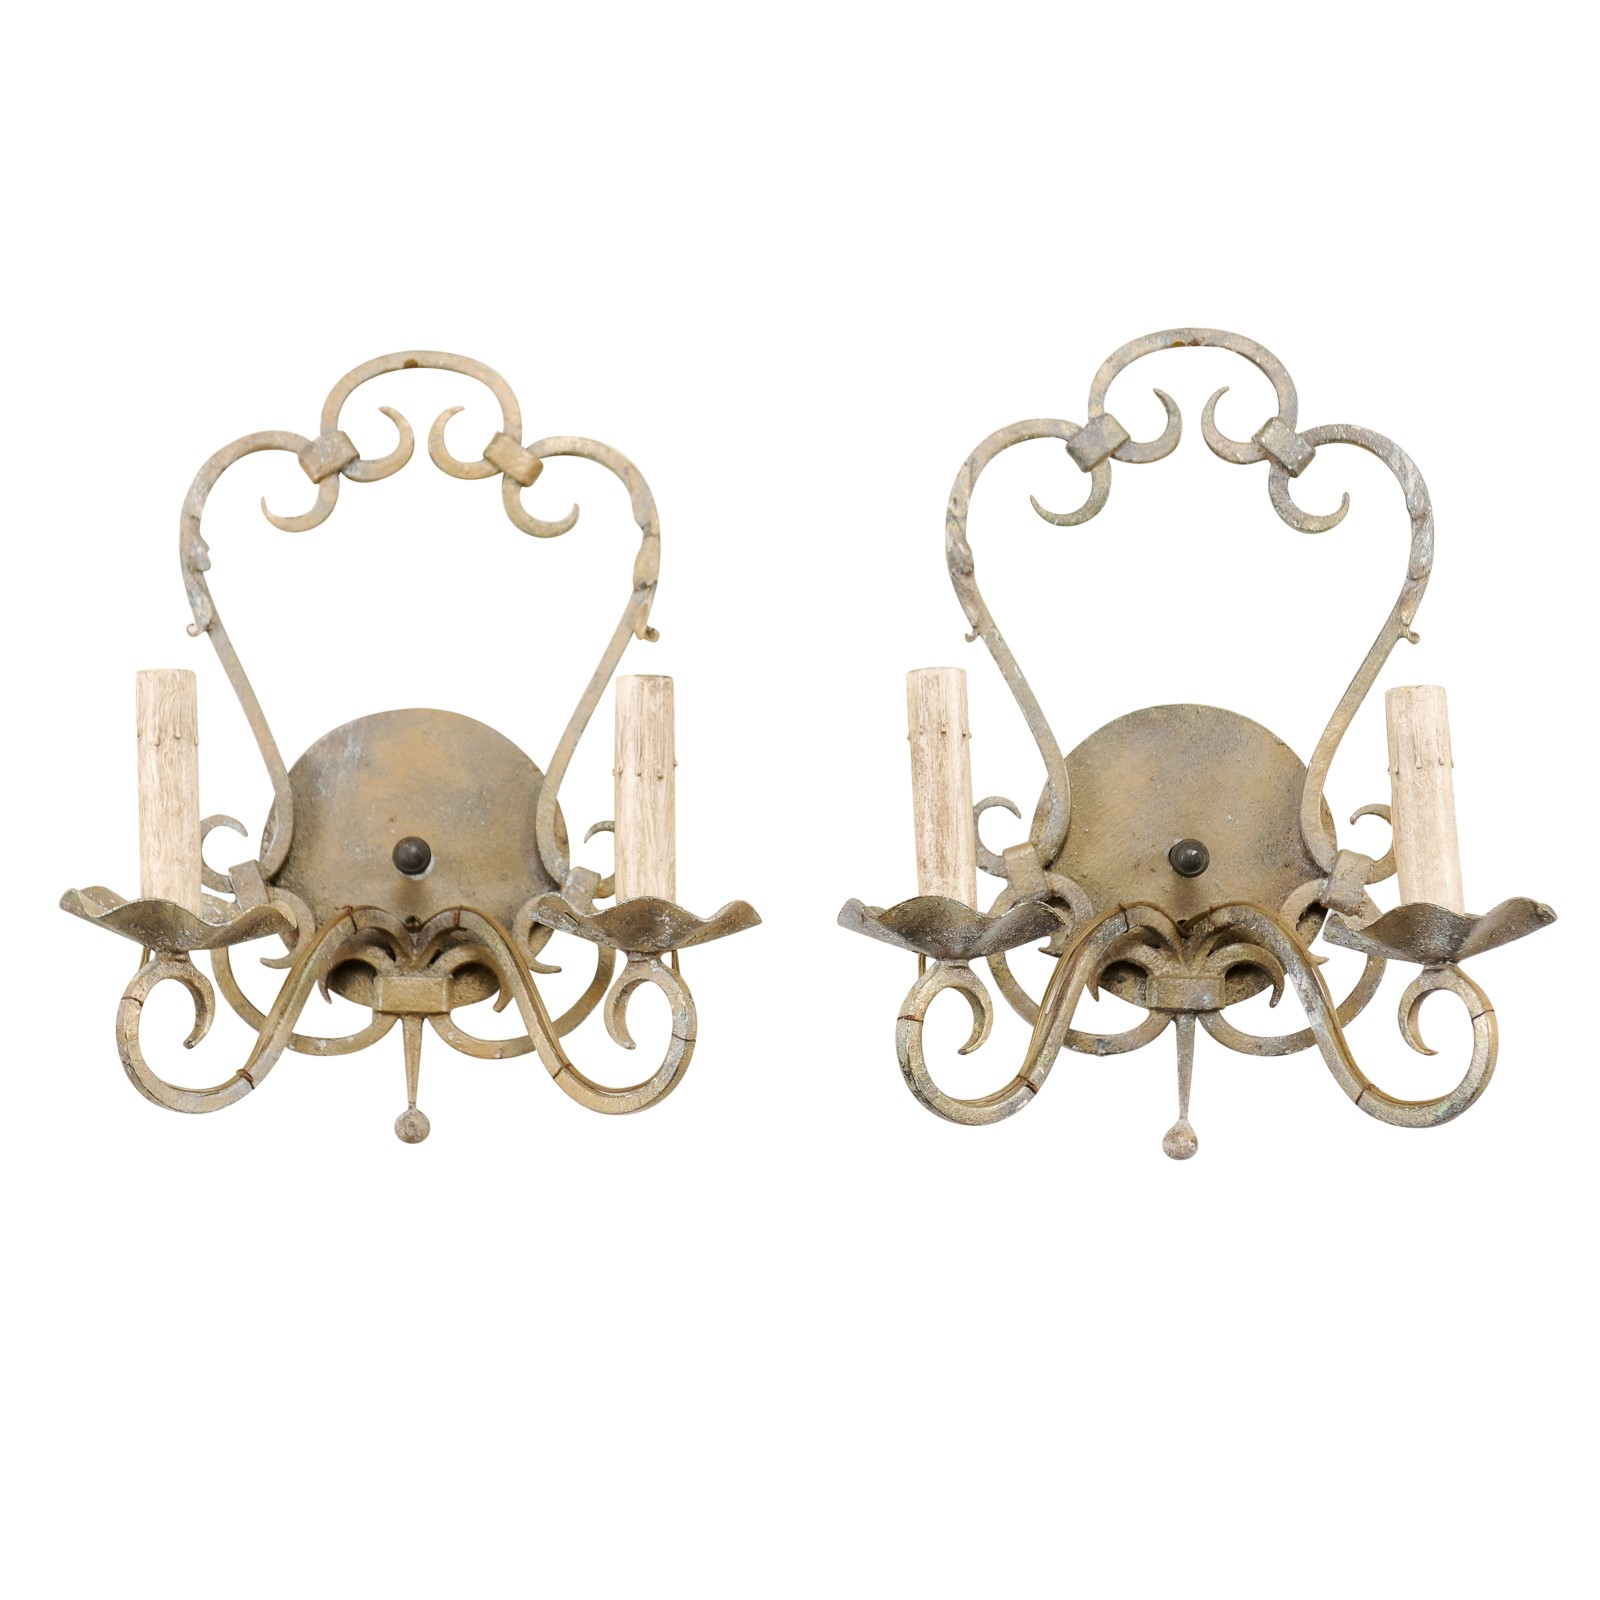 Pair French Painted Iron Sconces